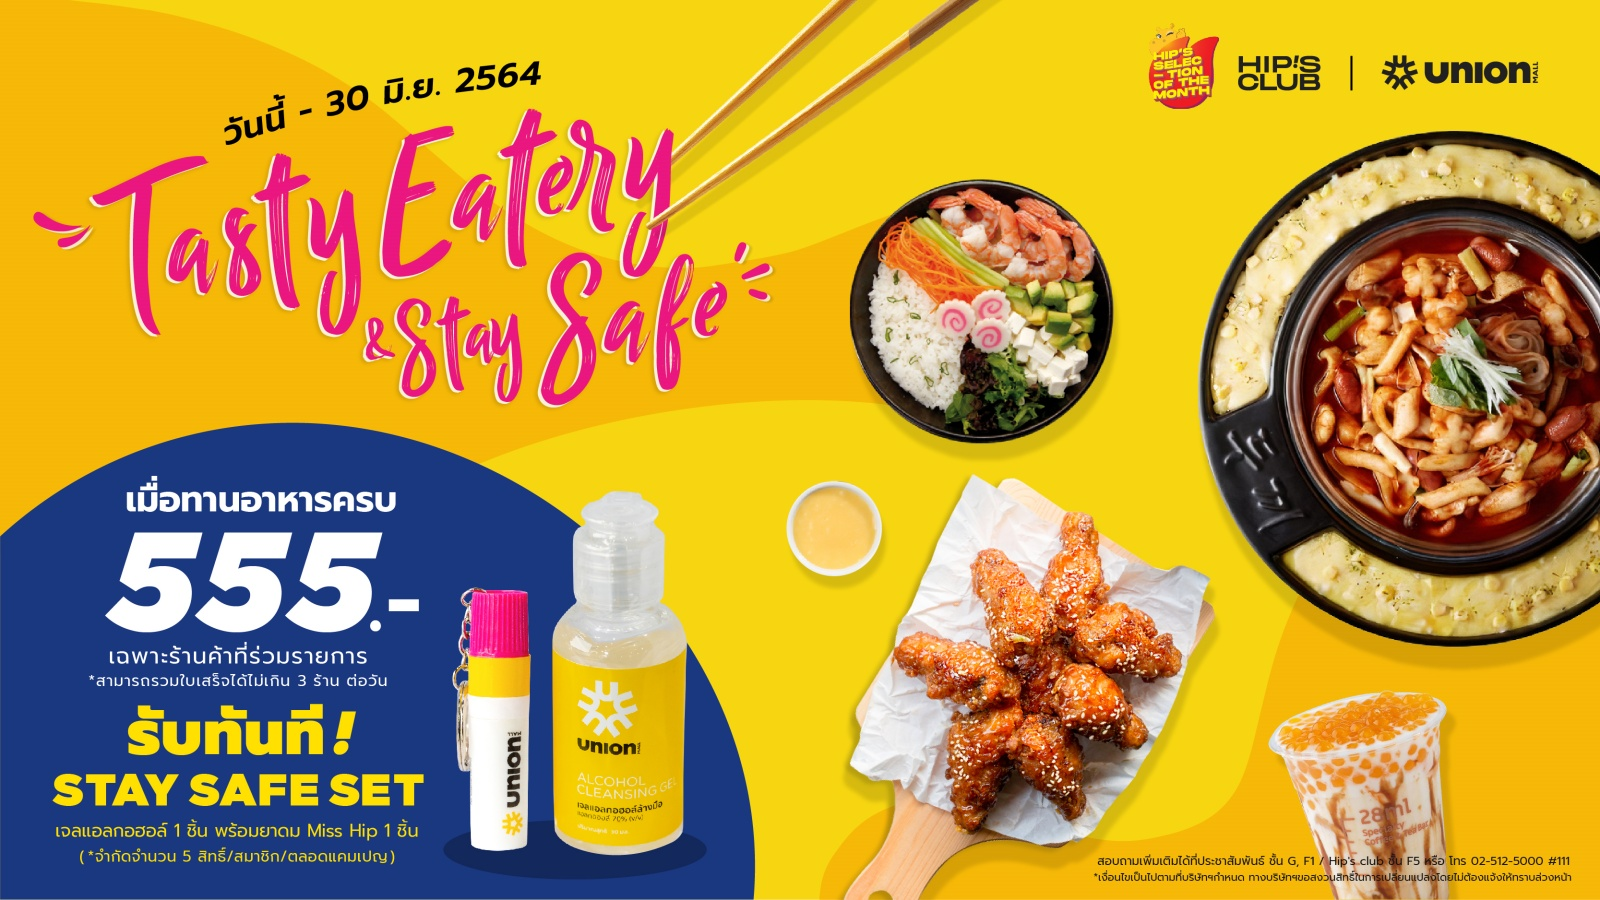 Union Mall TASTY EATERY and STAY SAFE